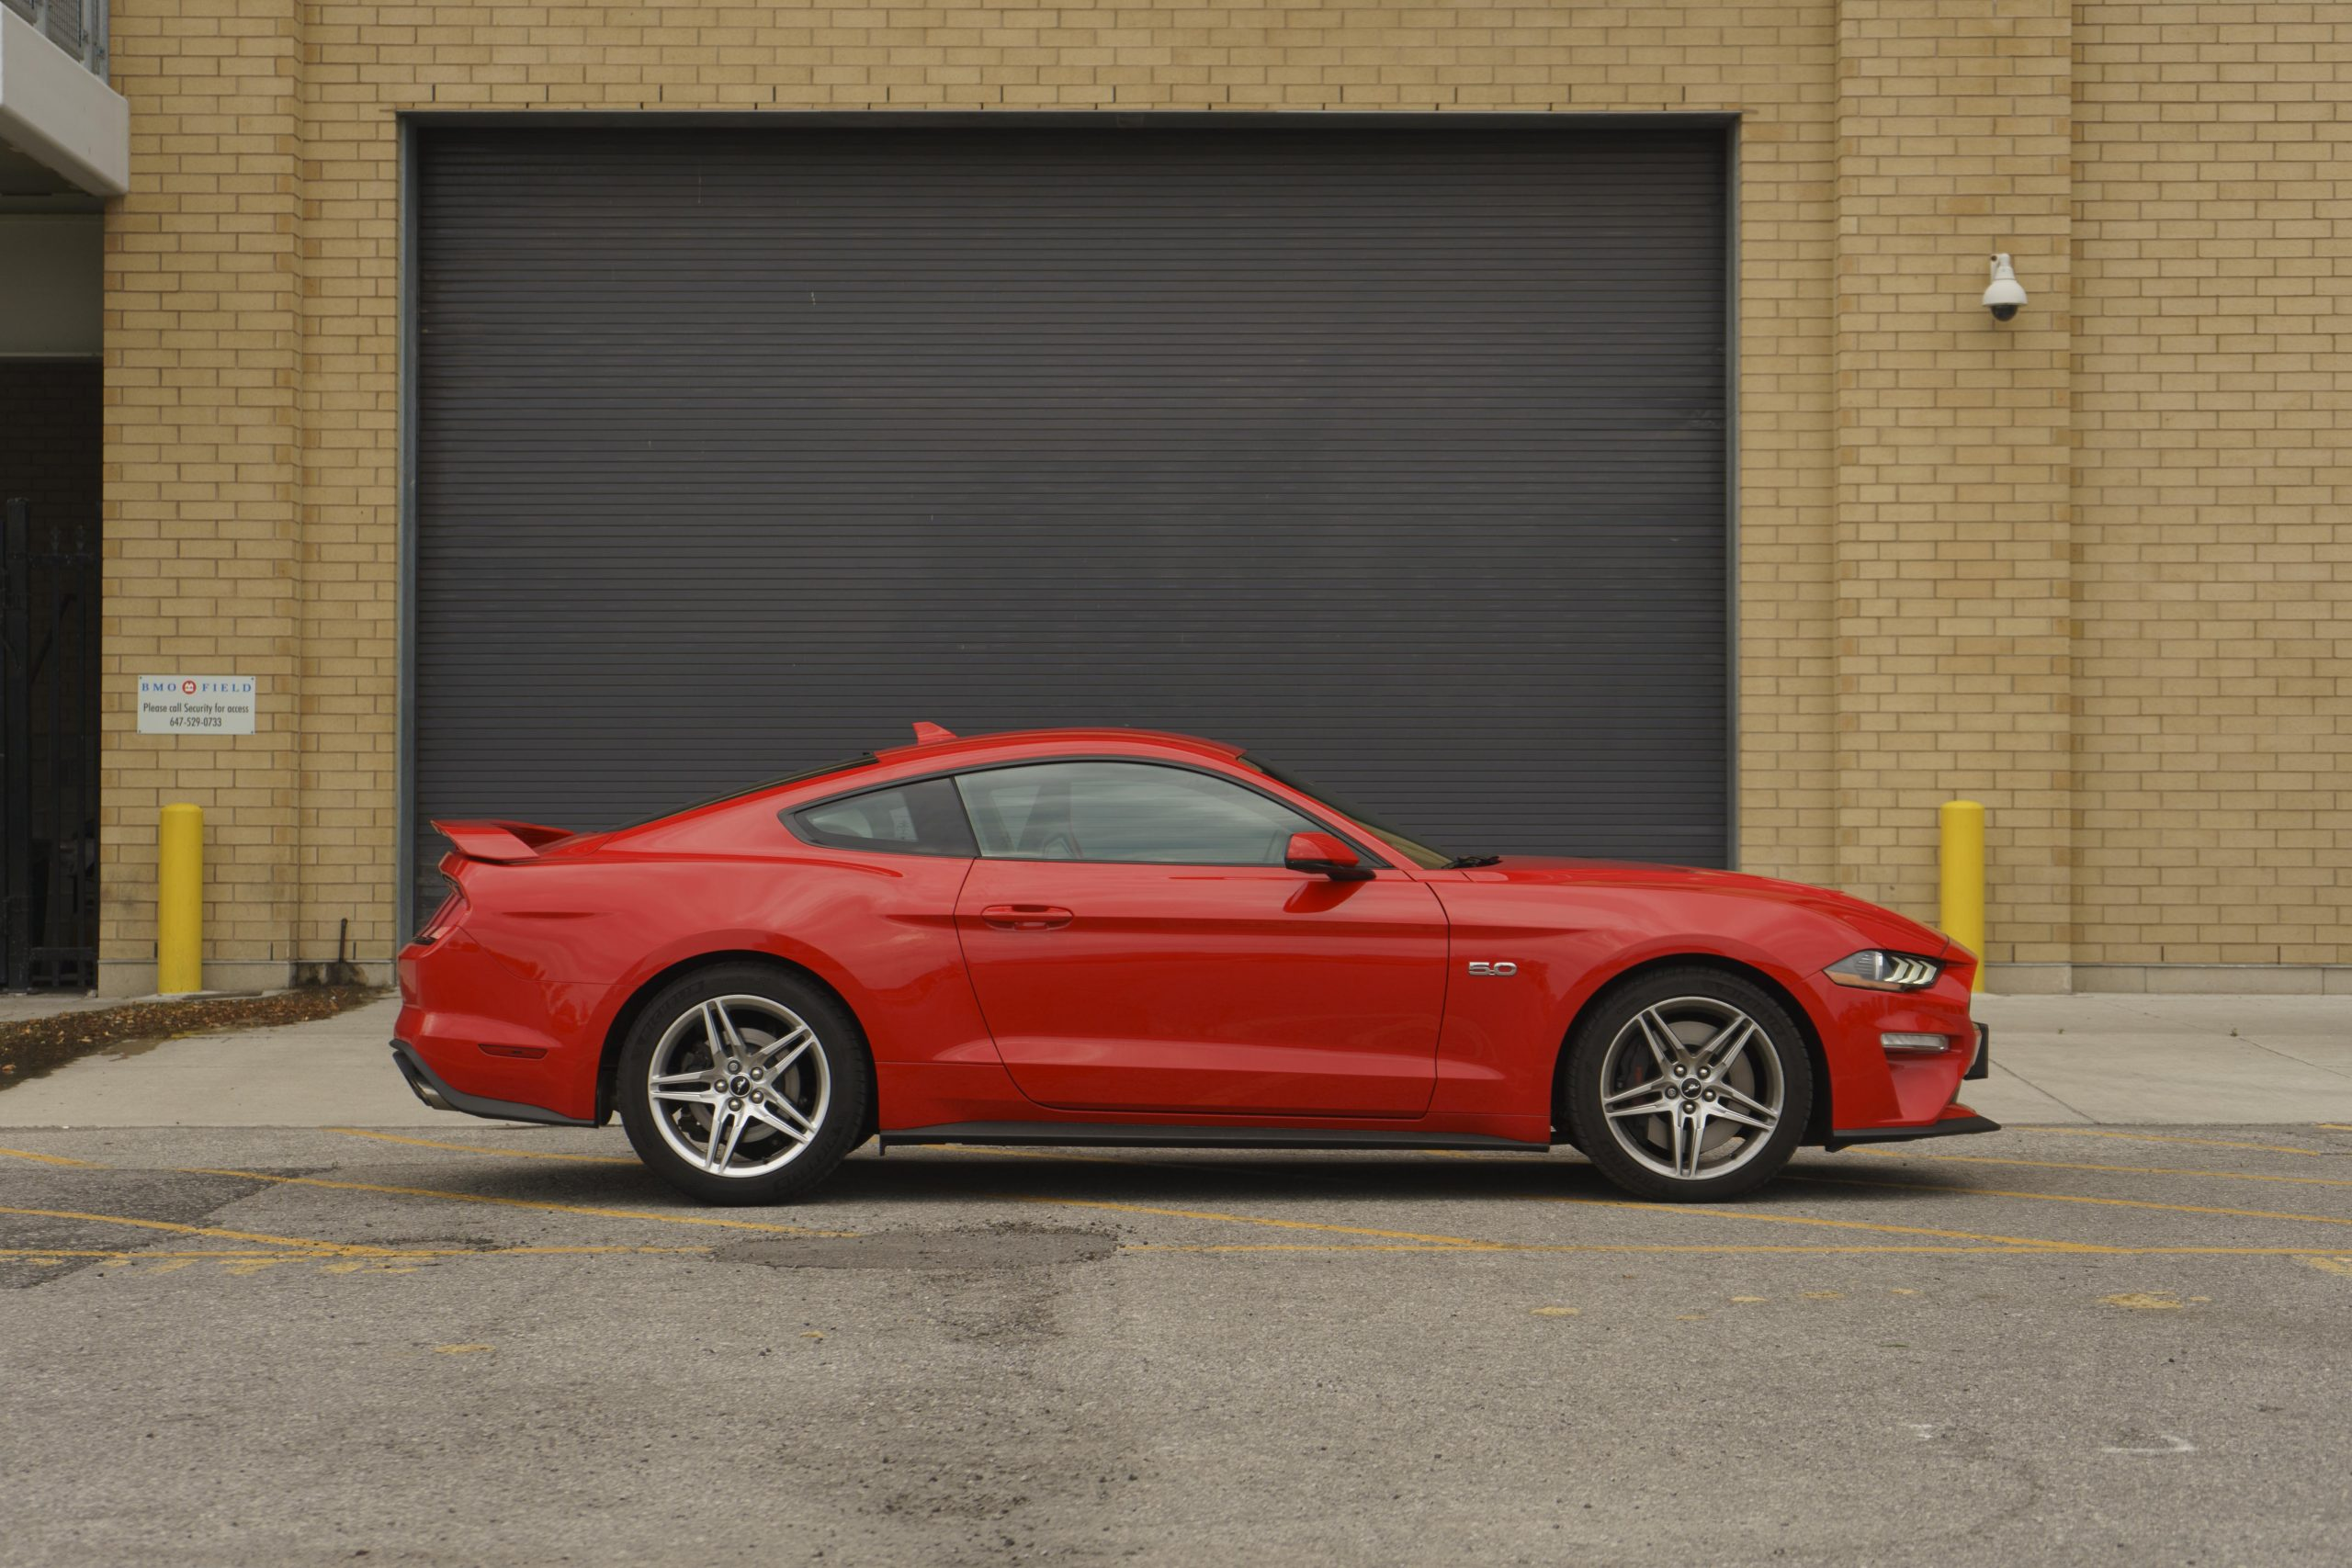 mustang ecoboost premium fastback designs start out during $30,860, as well as convertible car models usually are one more $5,500. Review 2020 Ford Mustang Gt Wheels Ca